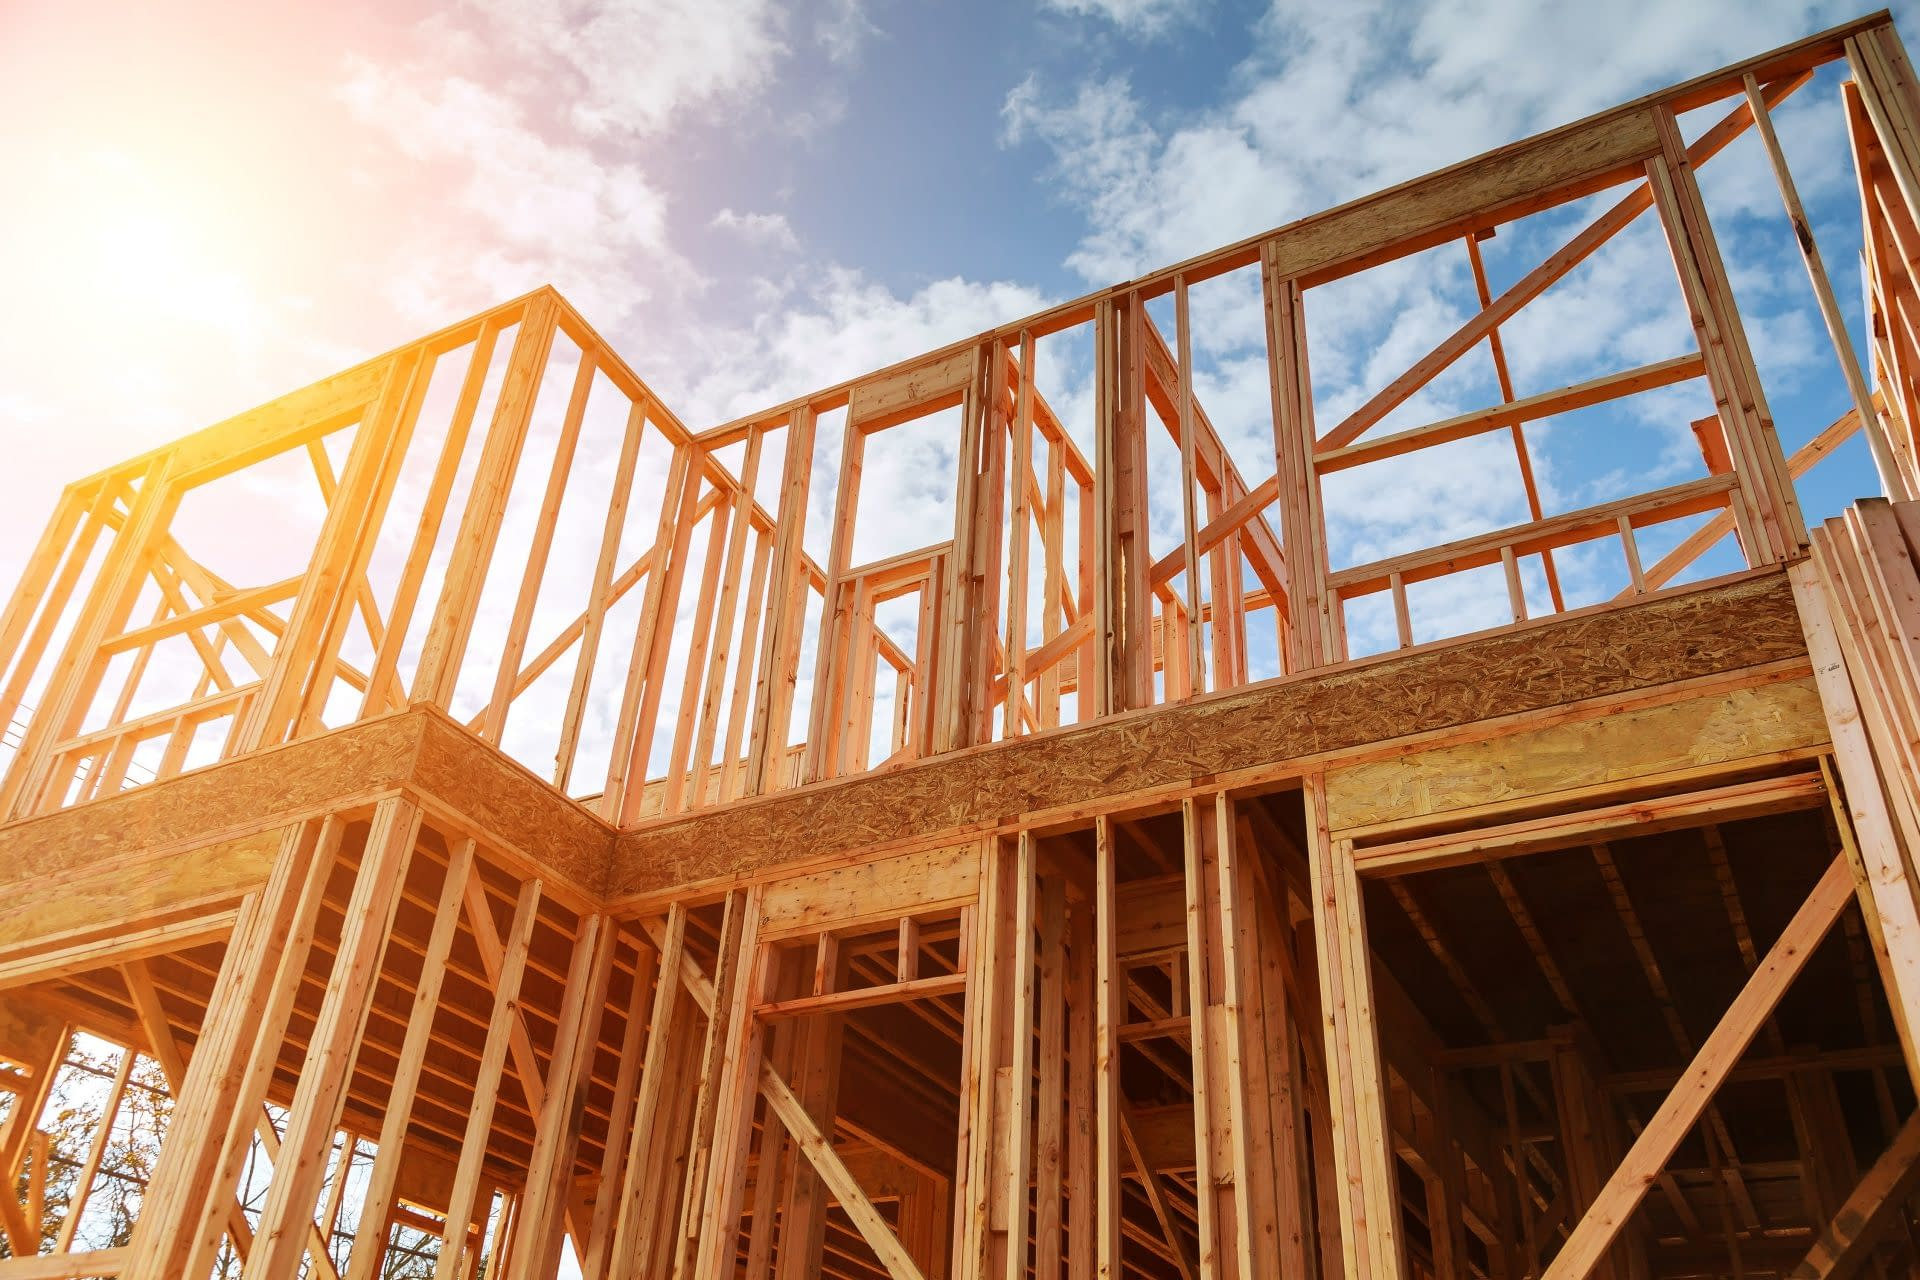 Healthy Homebuilding is the New Normal